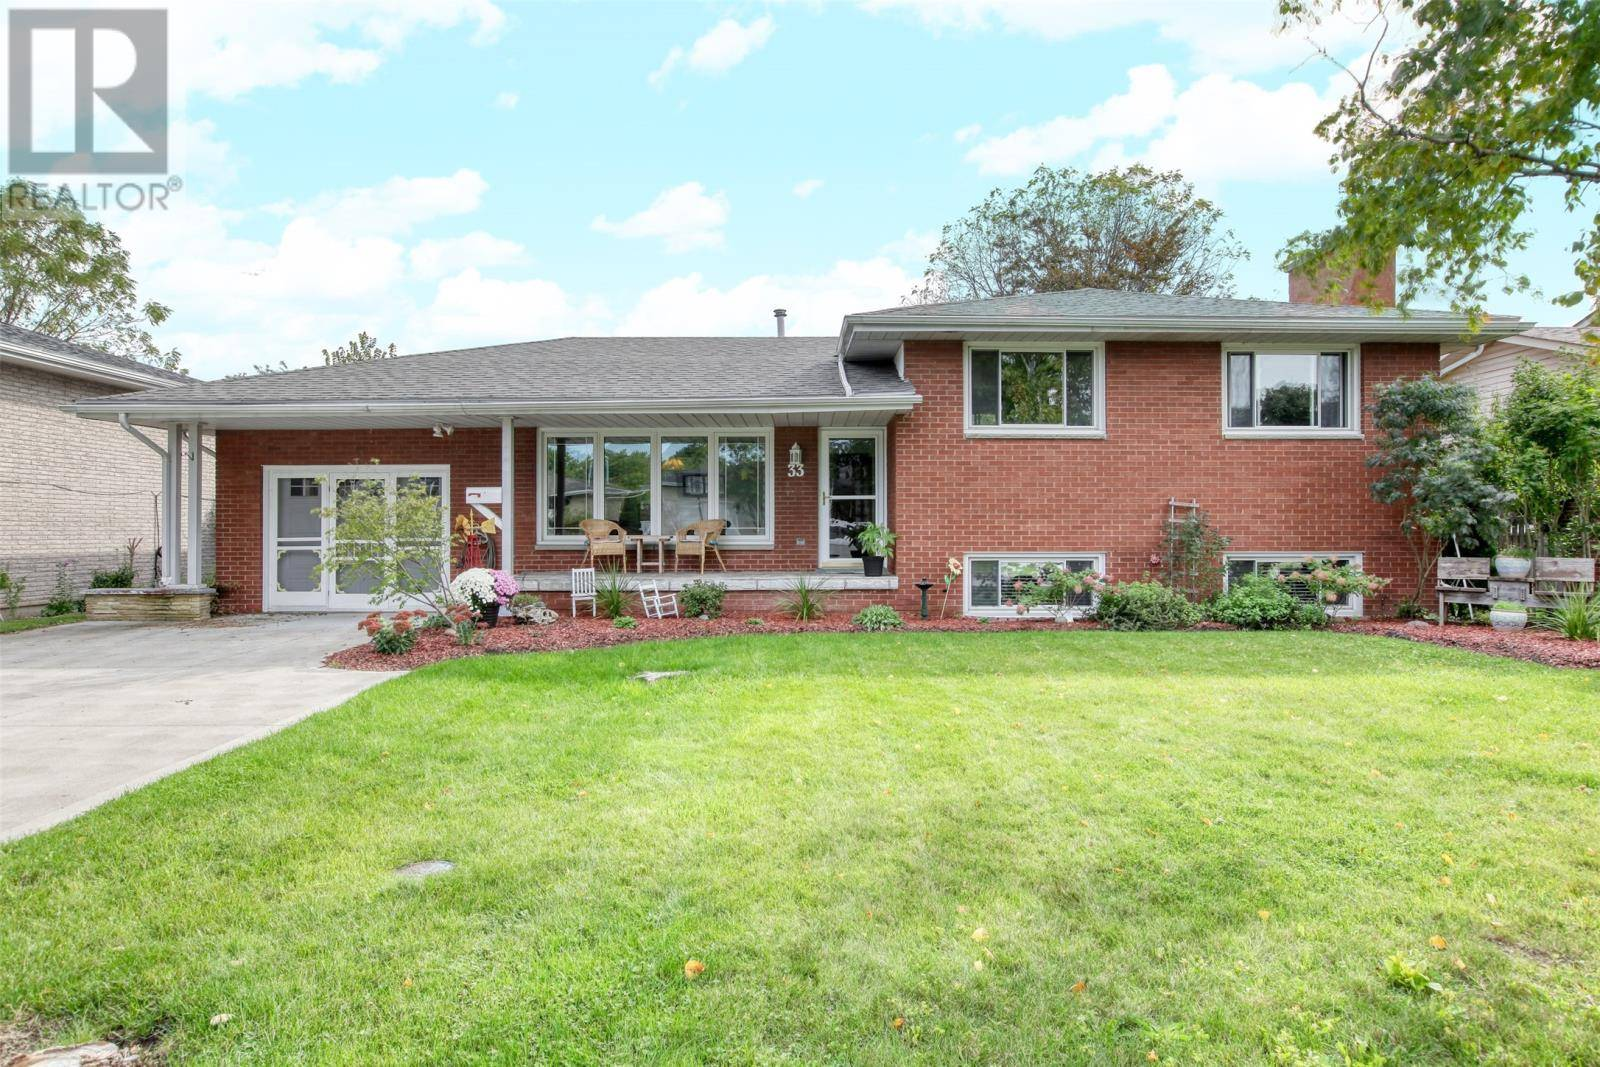 House for sale at 33 Main St North Amherstburg Ontario - MLS: 19026561